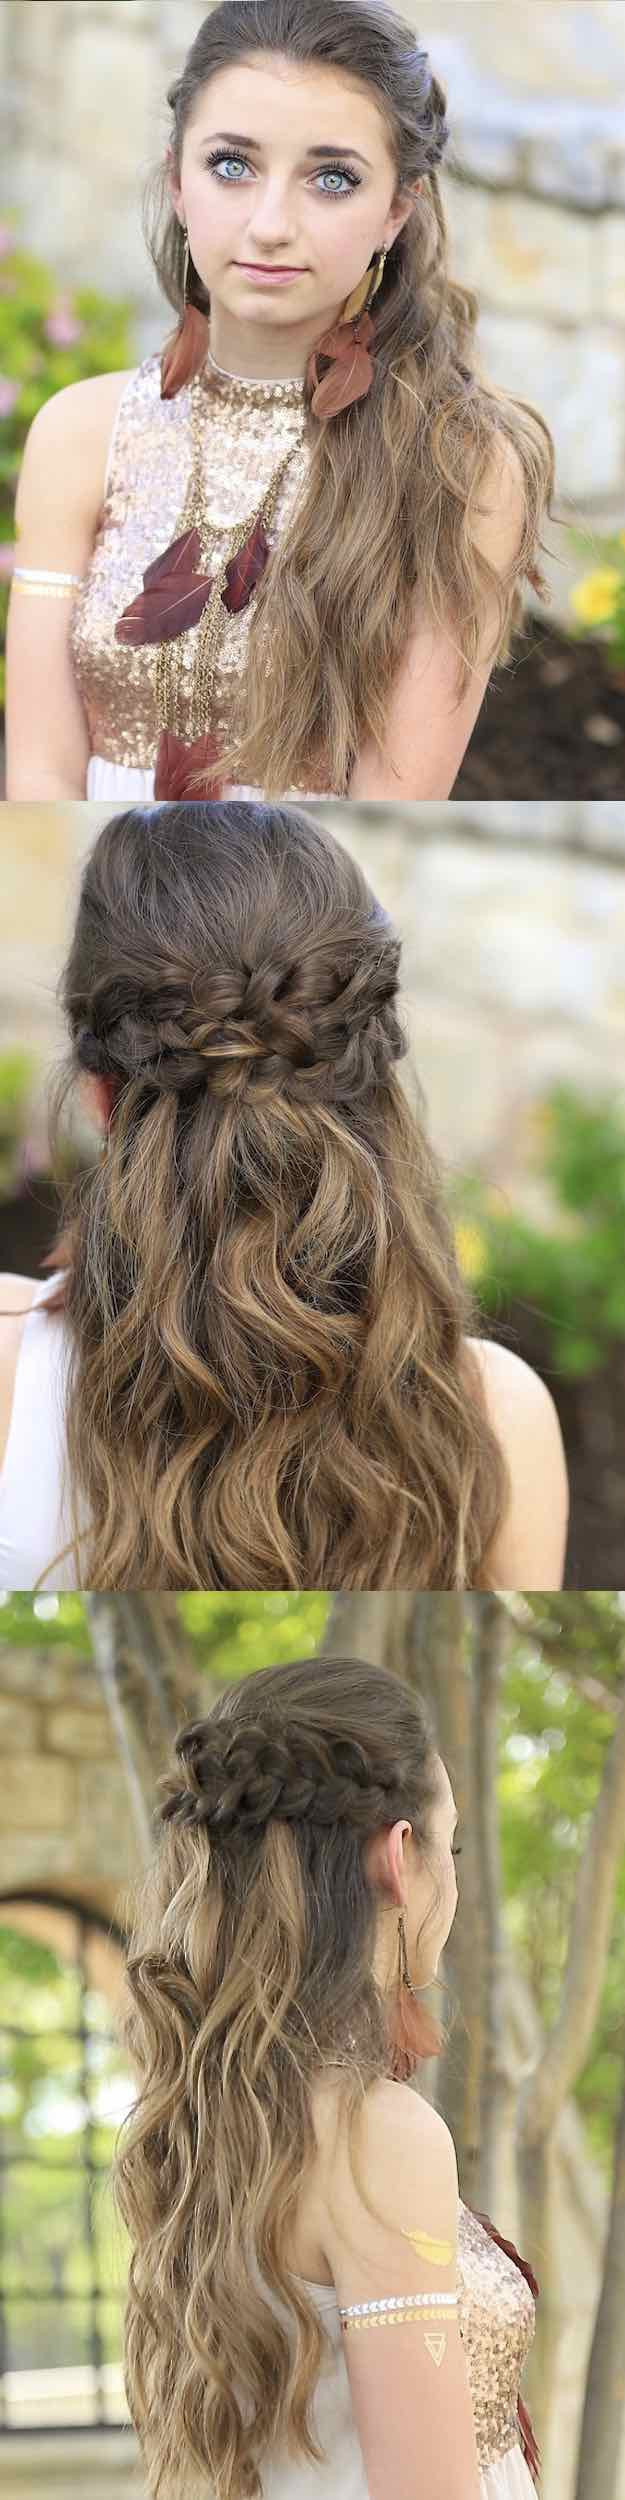 Prom Hairstyles For Medium Hair Up  25 Easy Half Up Half Down Hairstyle Tutorials For Prom